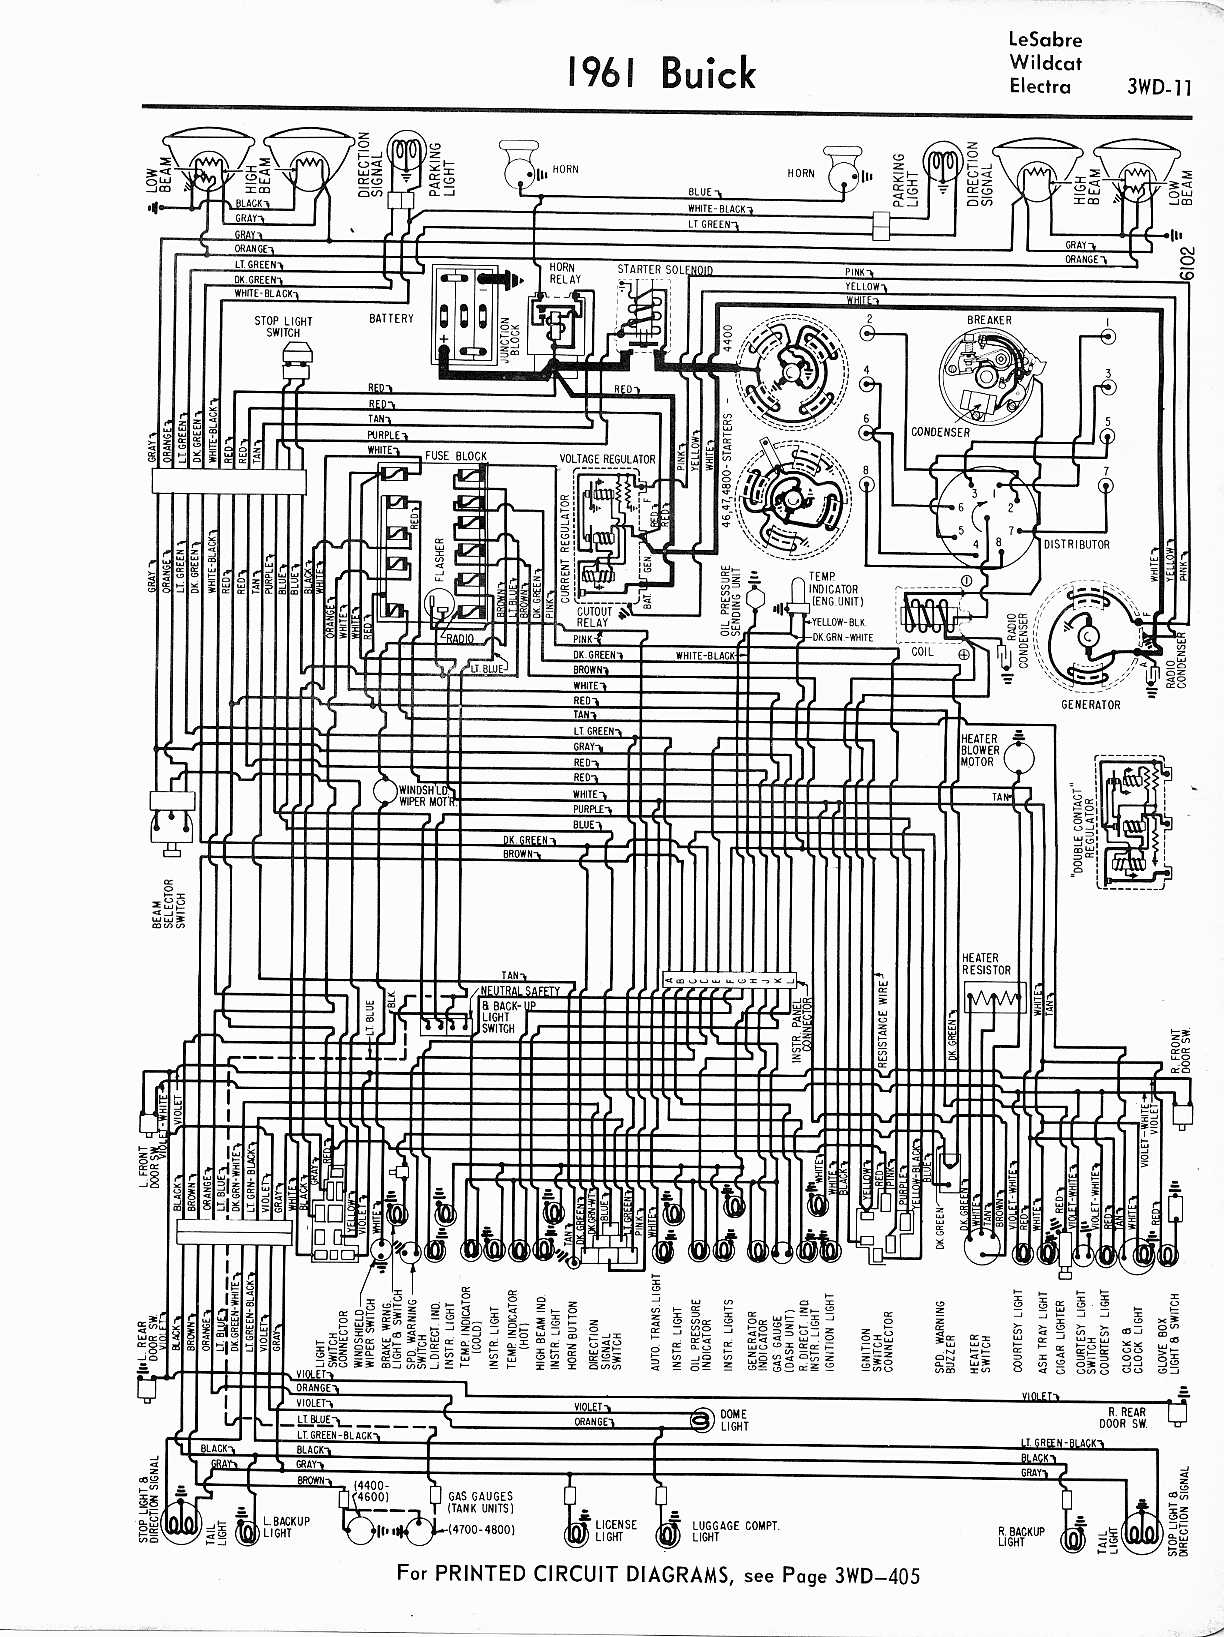 MWireBuic65_3WD 011 buick wiring diagrams 1957 1965 Buick LeSabre Engine Diagram at panicattacktreatment.co